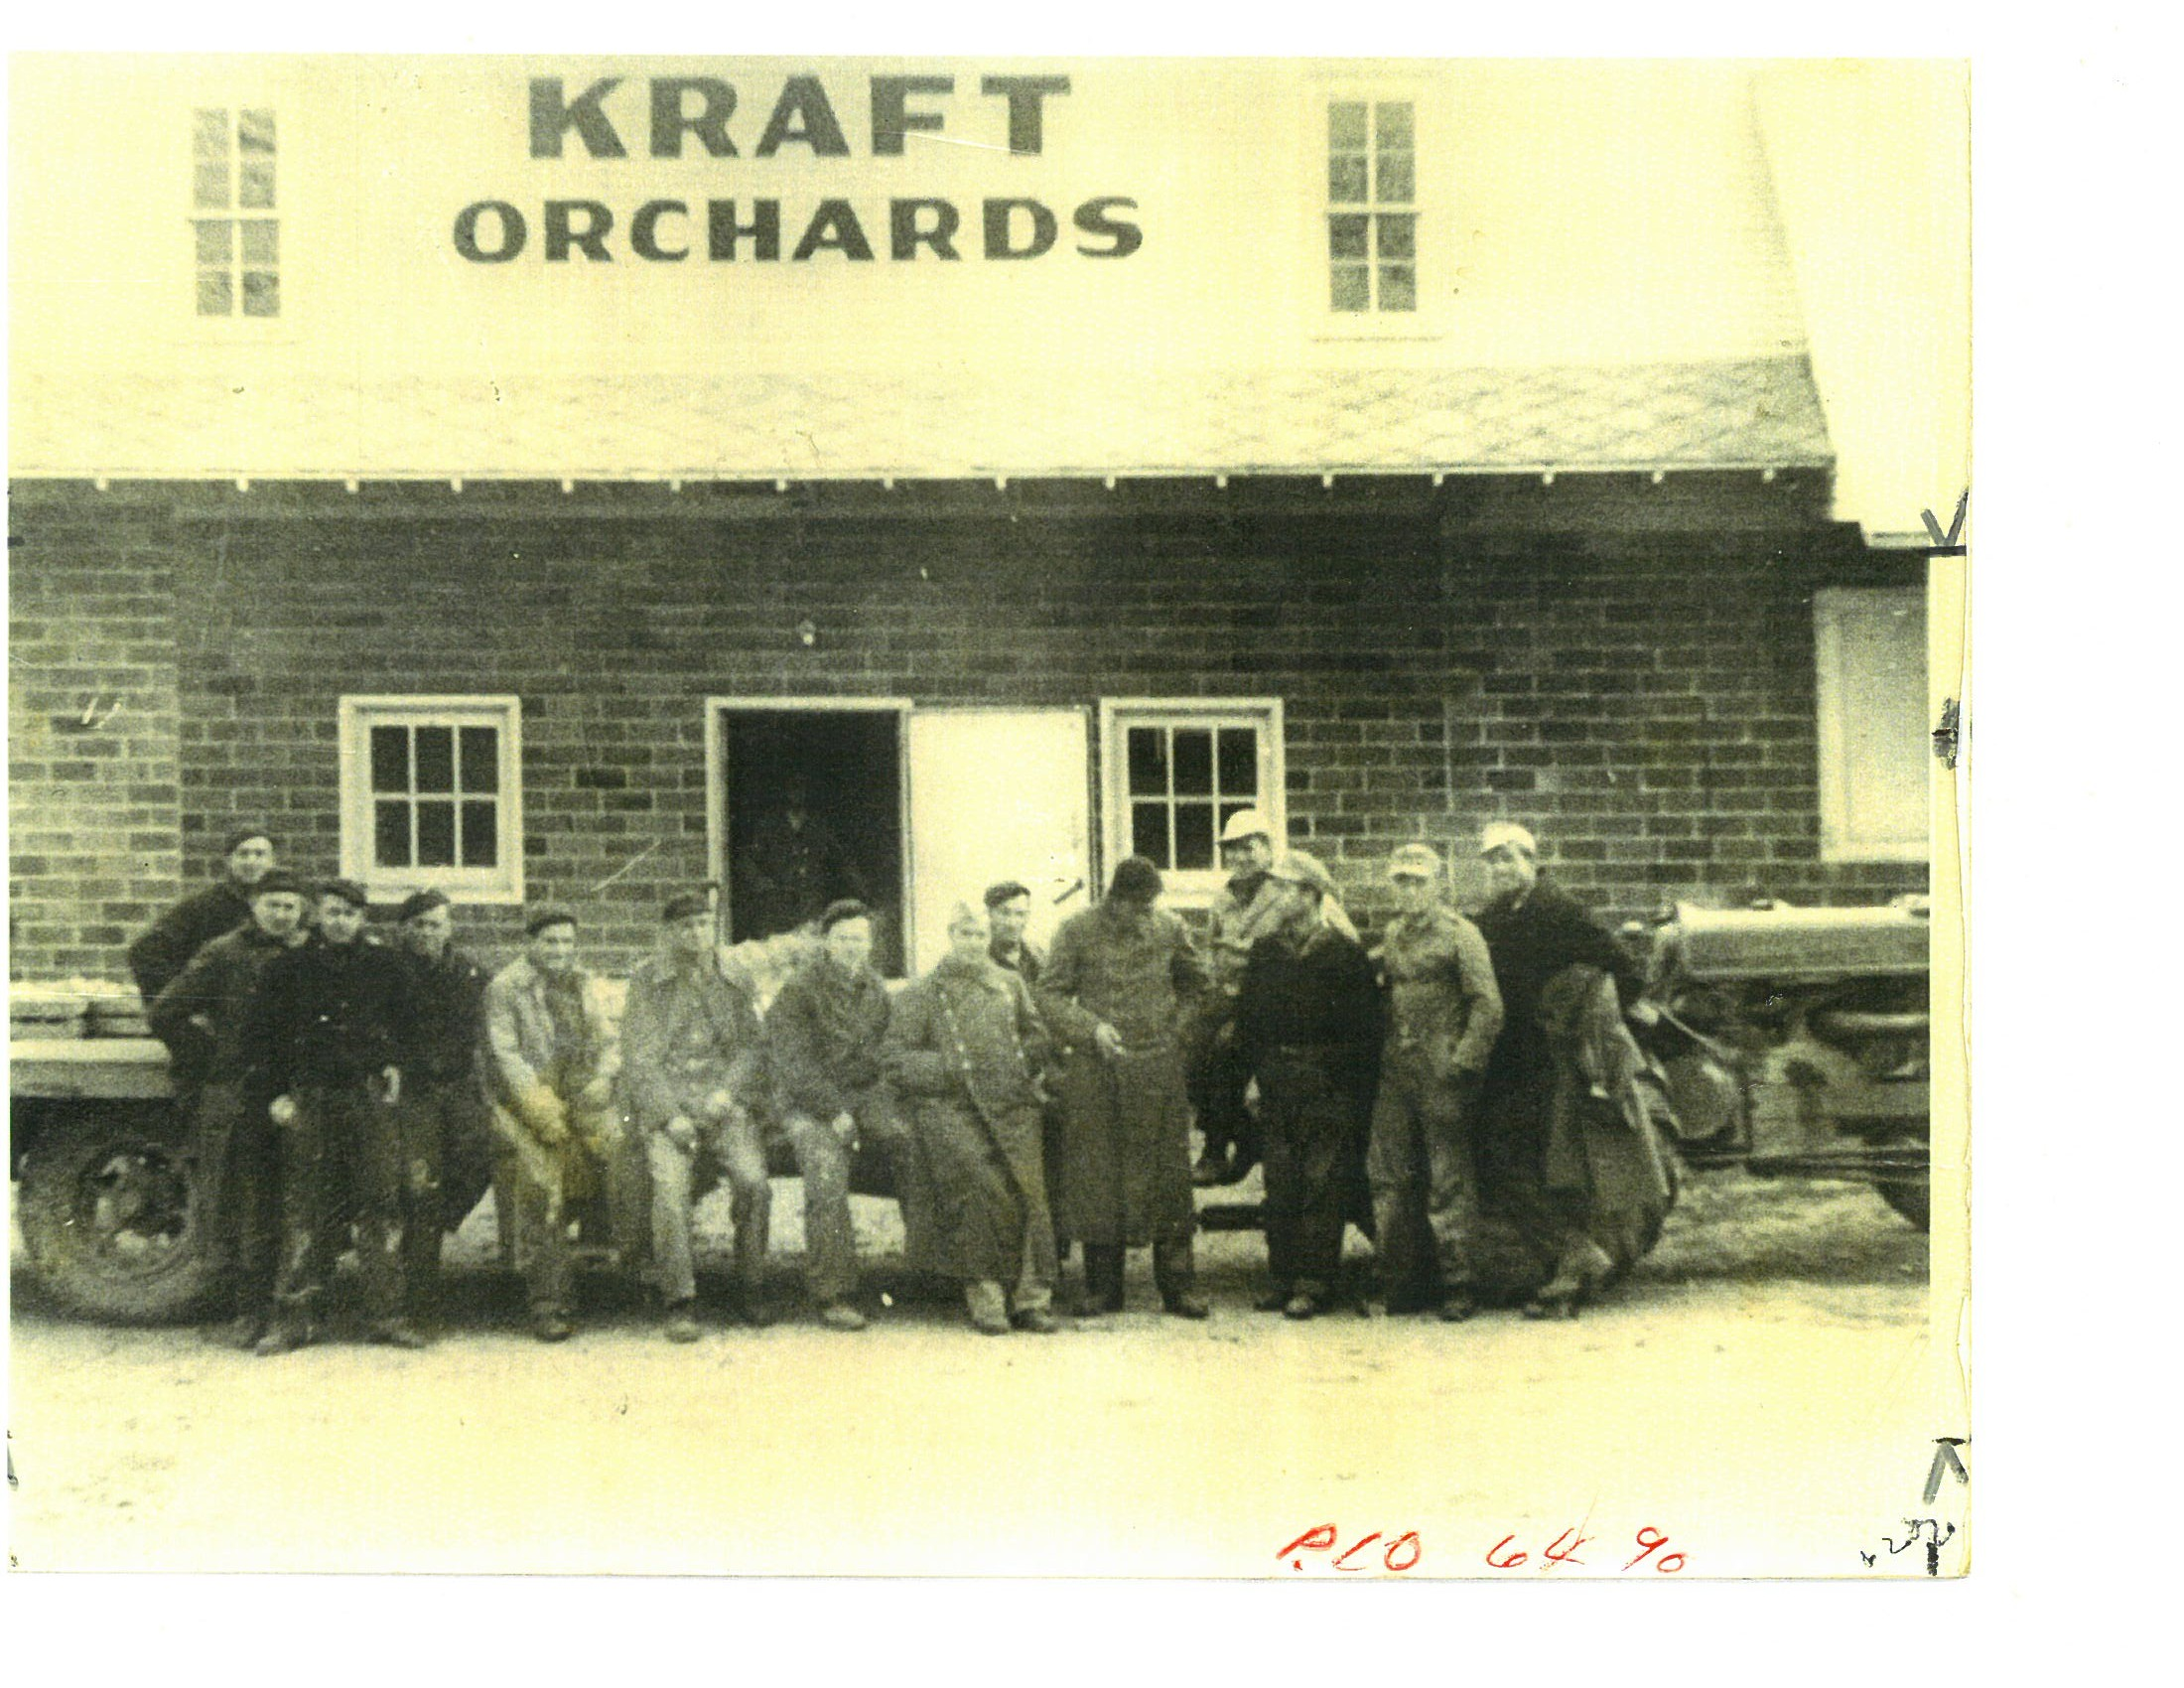 POW's standing in front of Kraft Orchard's Barn where they were employed - Use of Photo courtesy of Sparta Township Historical Commision